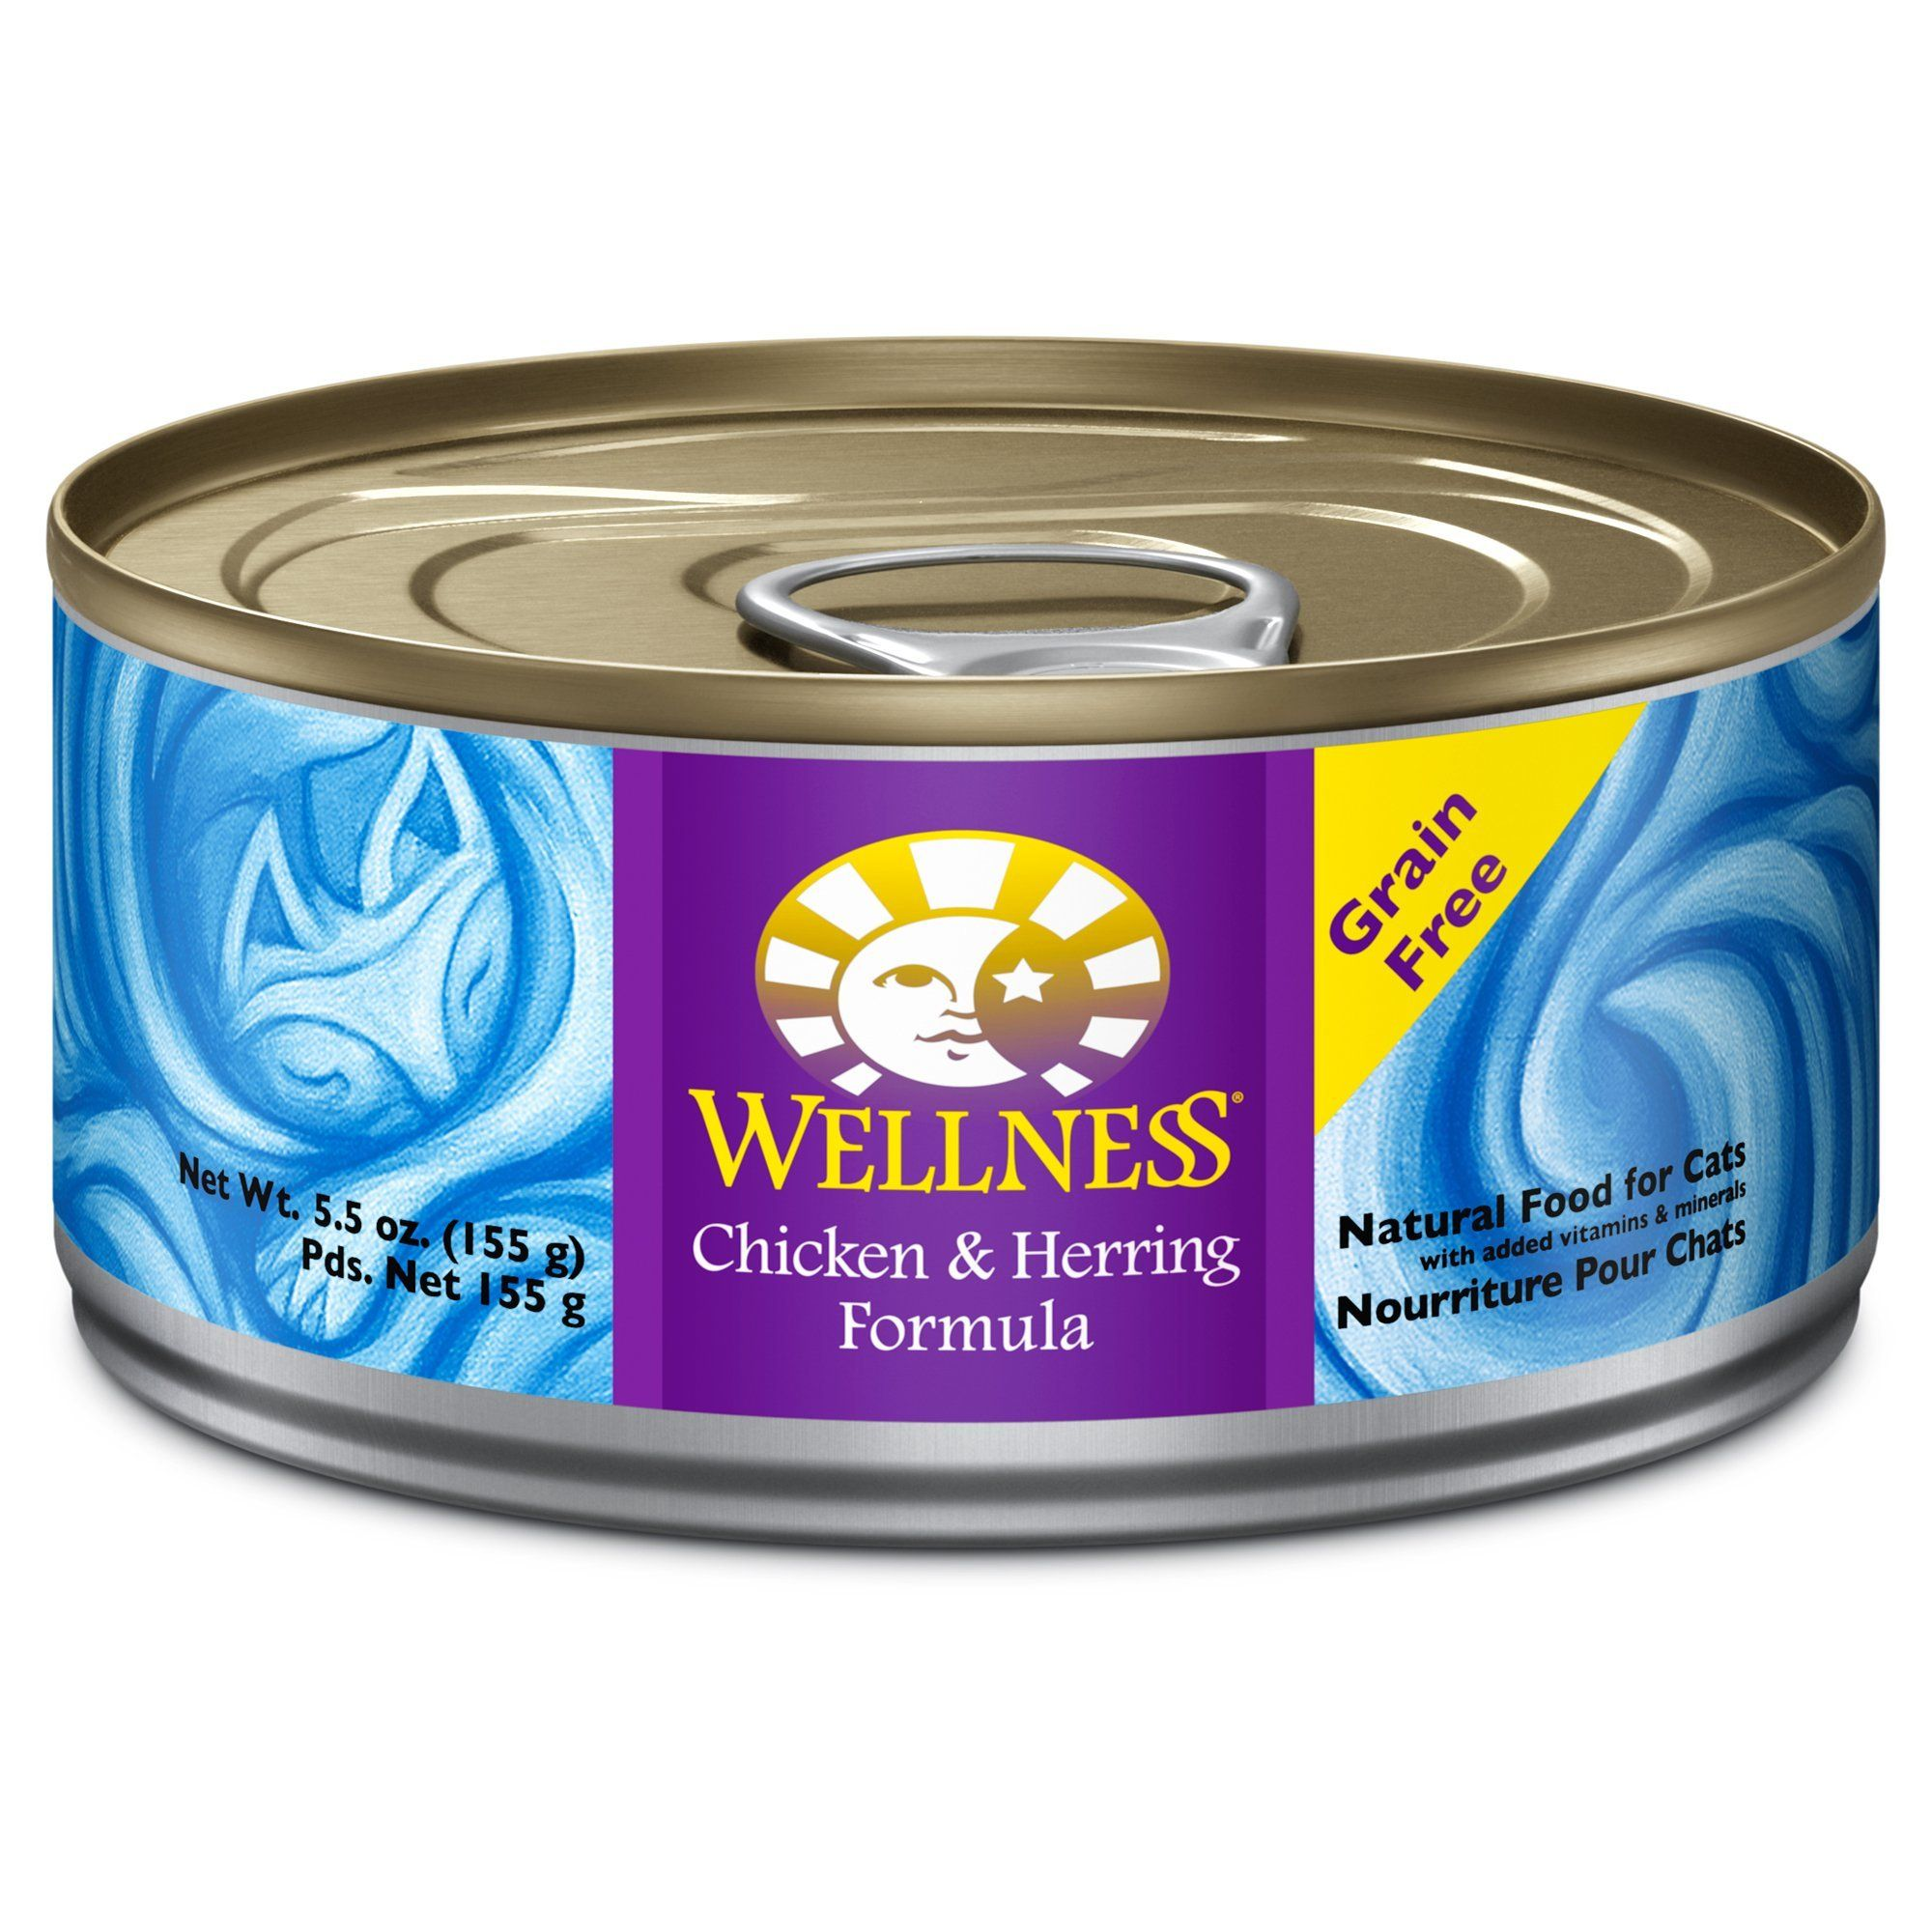 WELLNESS CHKN/HERR 5.5OZ 24 Count Case Canned cat food